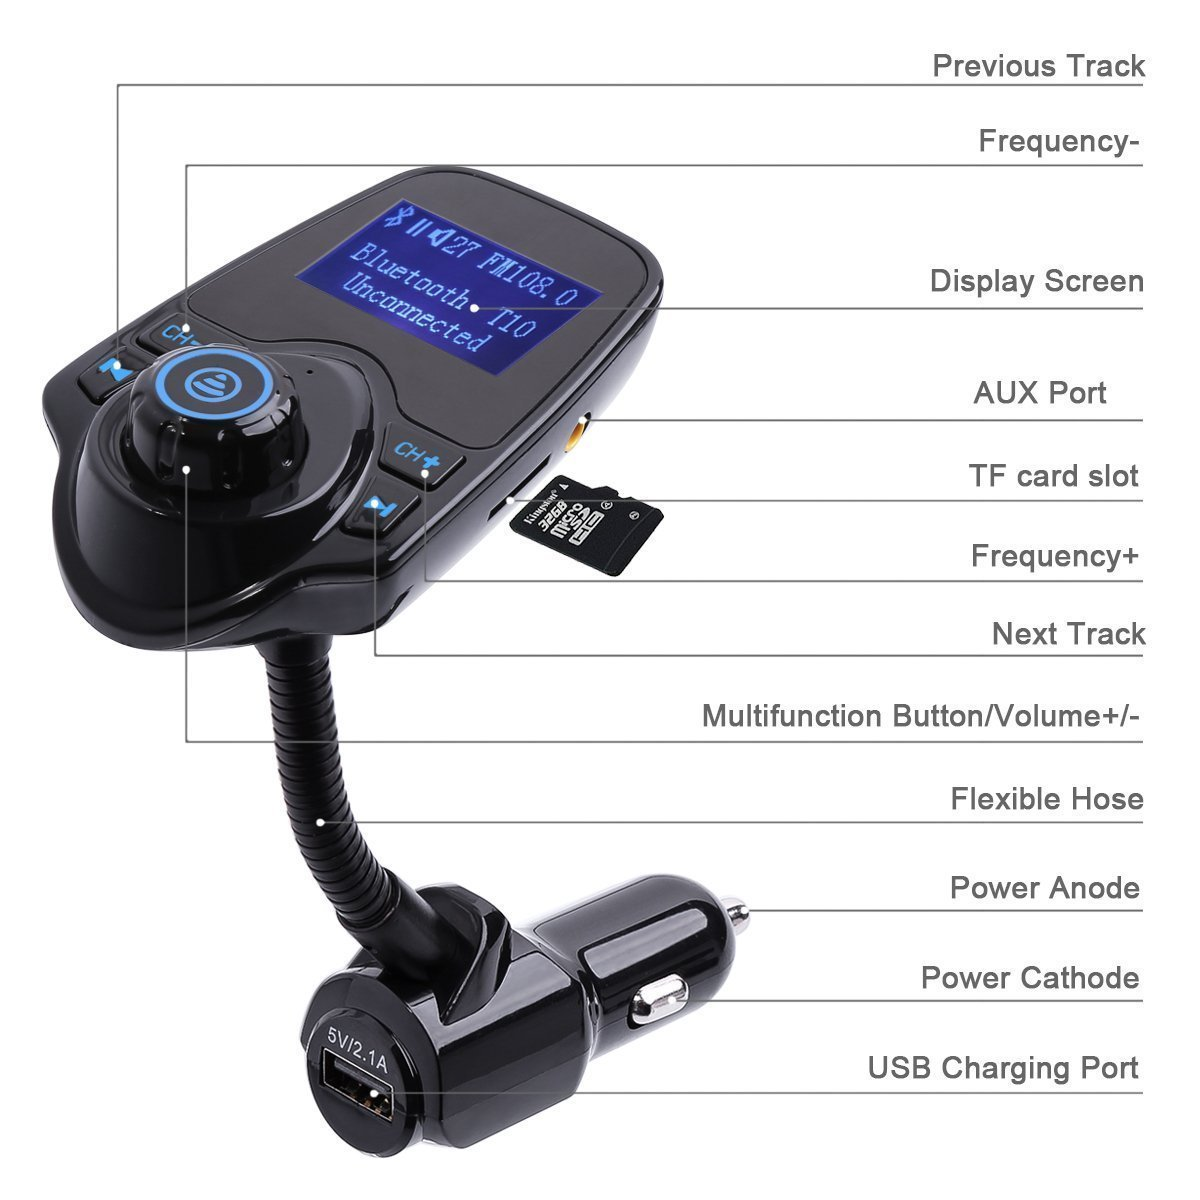 Wireless In-Car Bluetooth FM Transmitter Radio Adapter Car Kit W 1.44 Inch Display Supports TF//SD Card and USB Car Charger for All Smartphones Audio Players